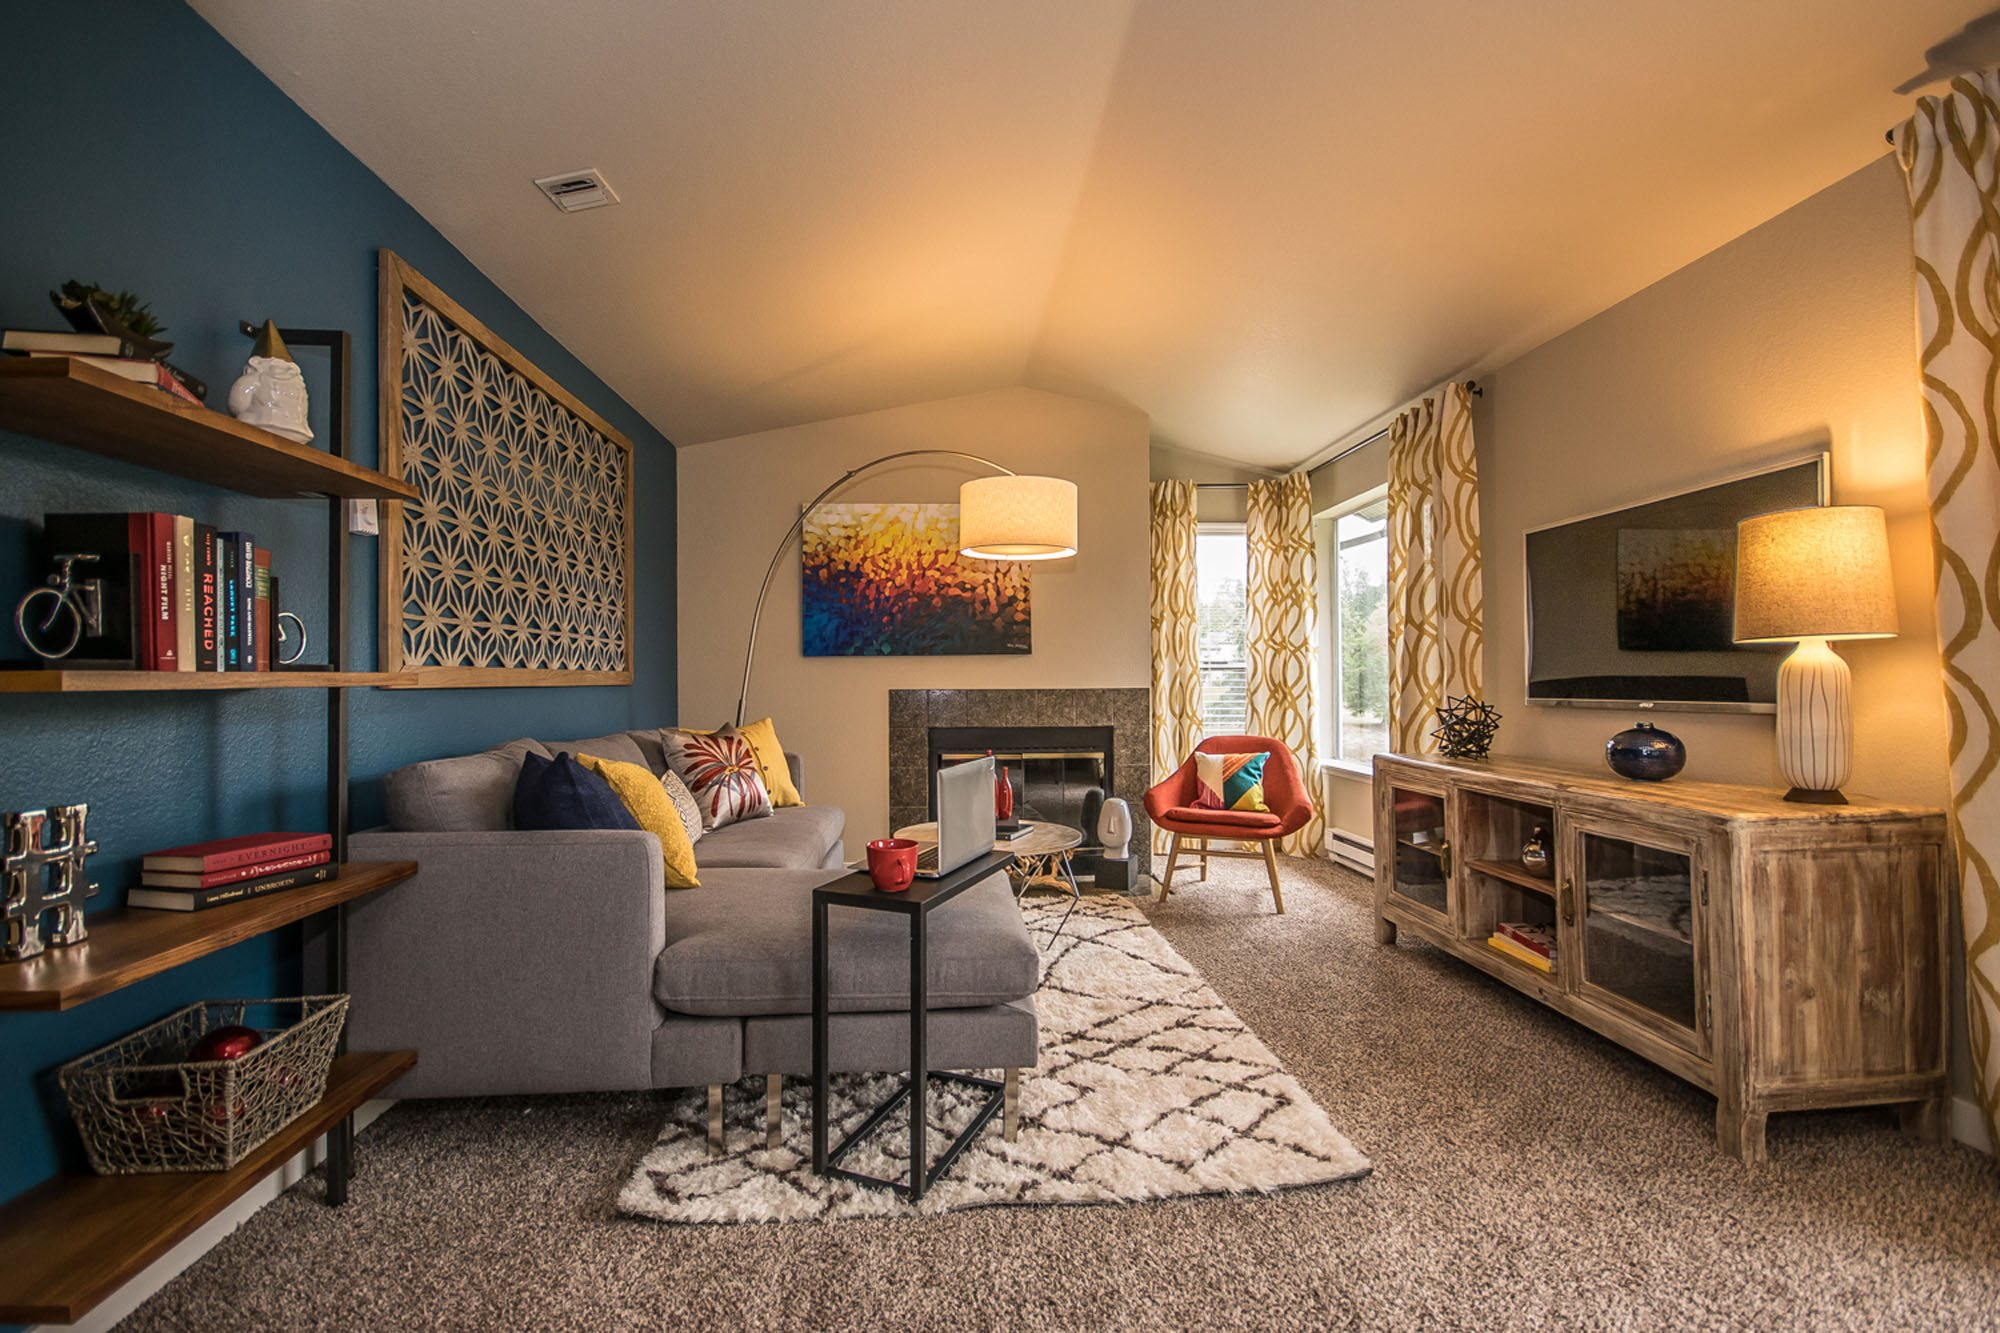 Apartments Tacoma-The Fairways Apartments Open and Spacious Living Room with Modern Designs and Wood-Styled Floors